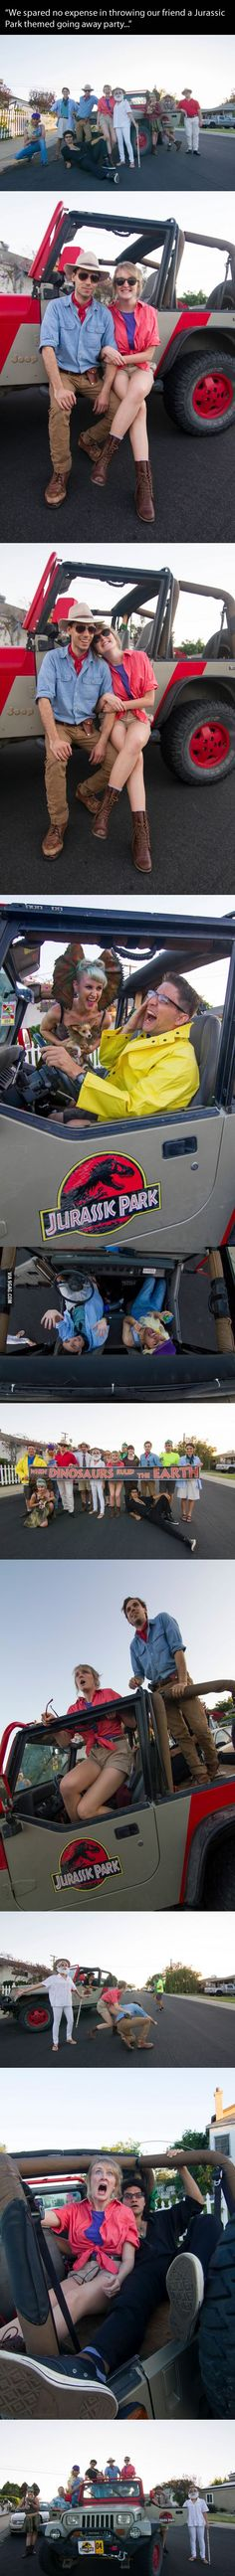 Awesome Jurassic Park Themed Party!